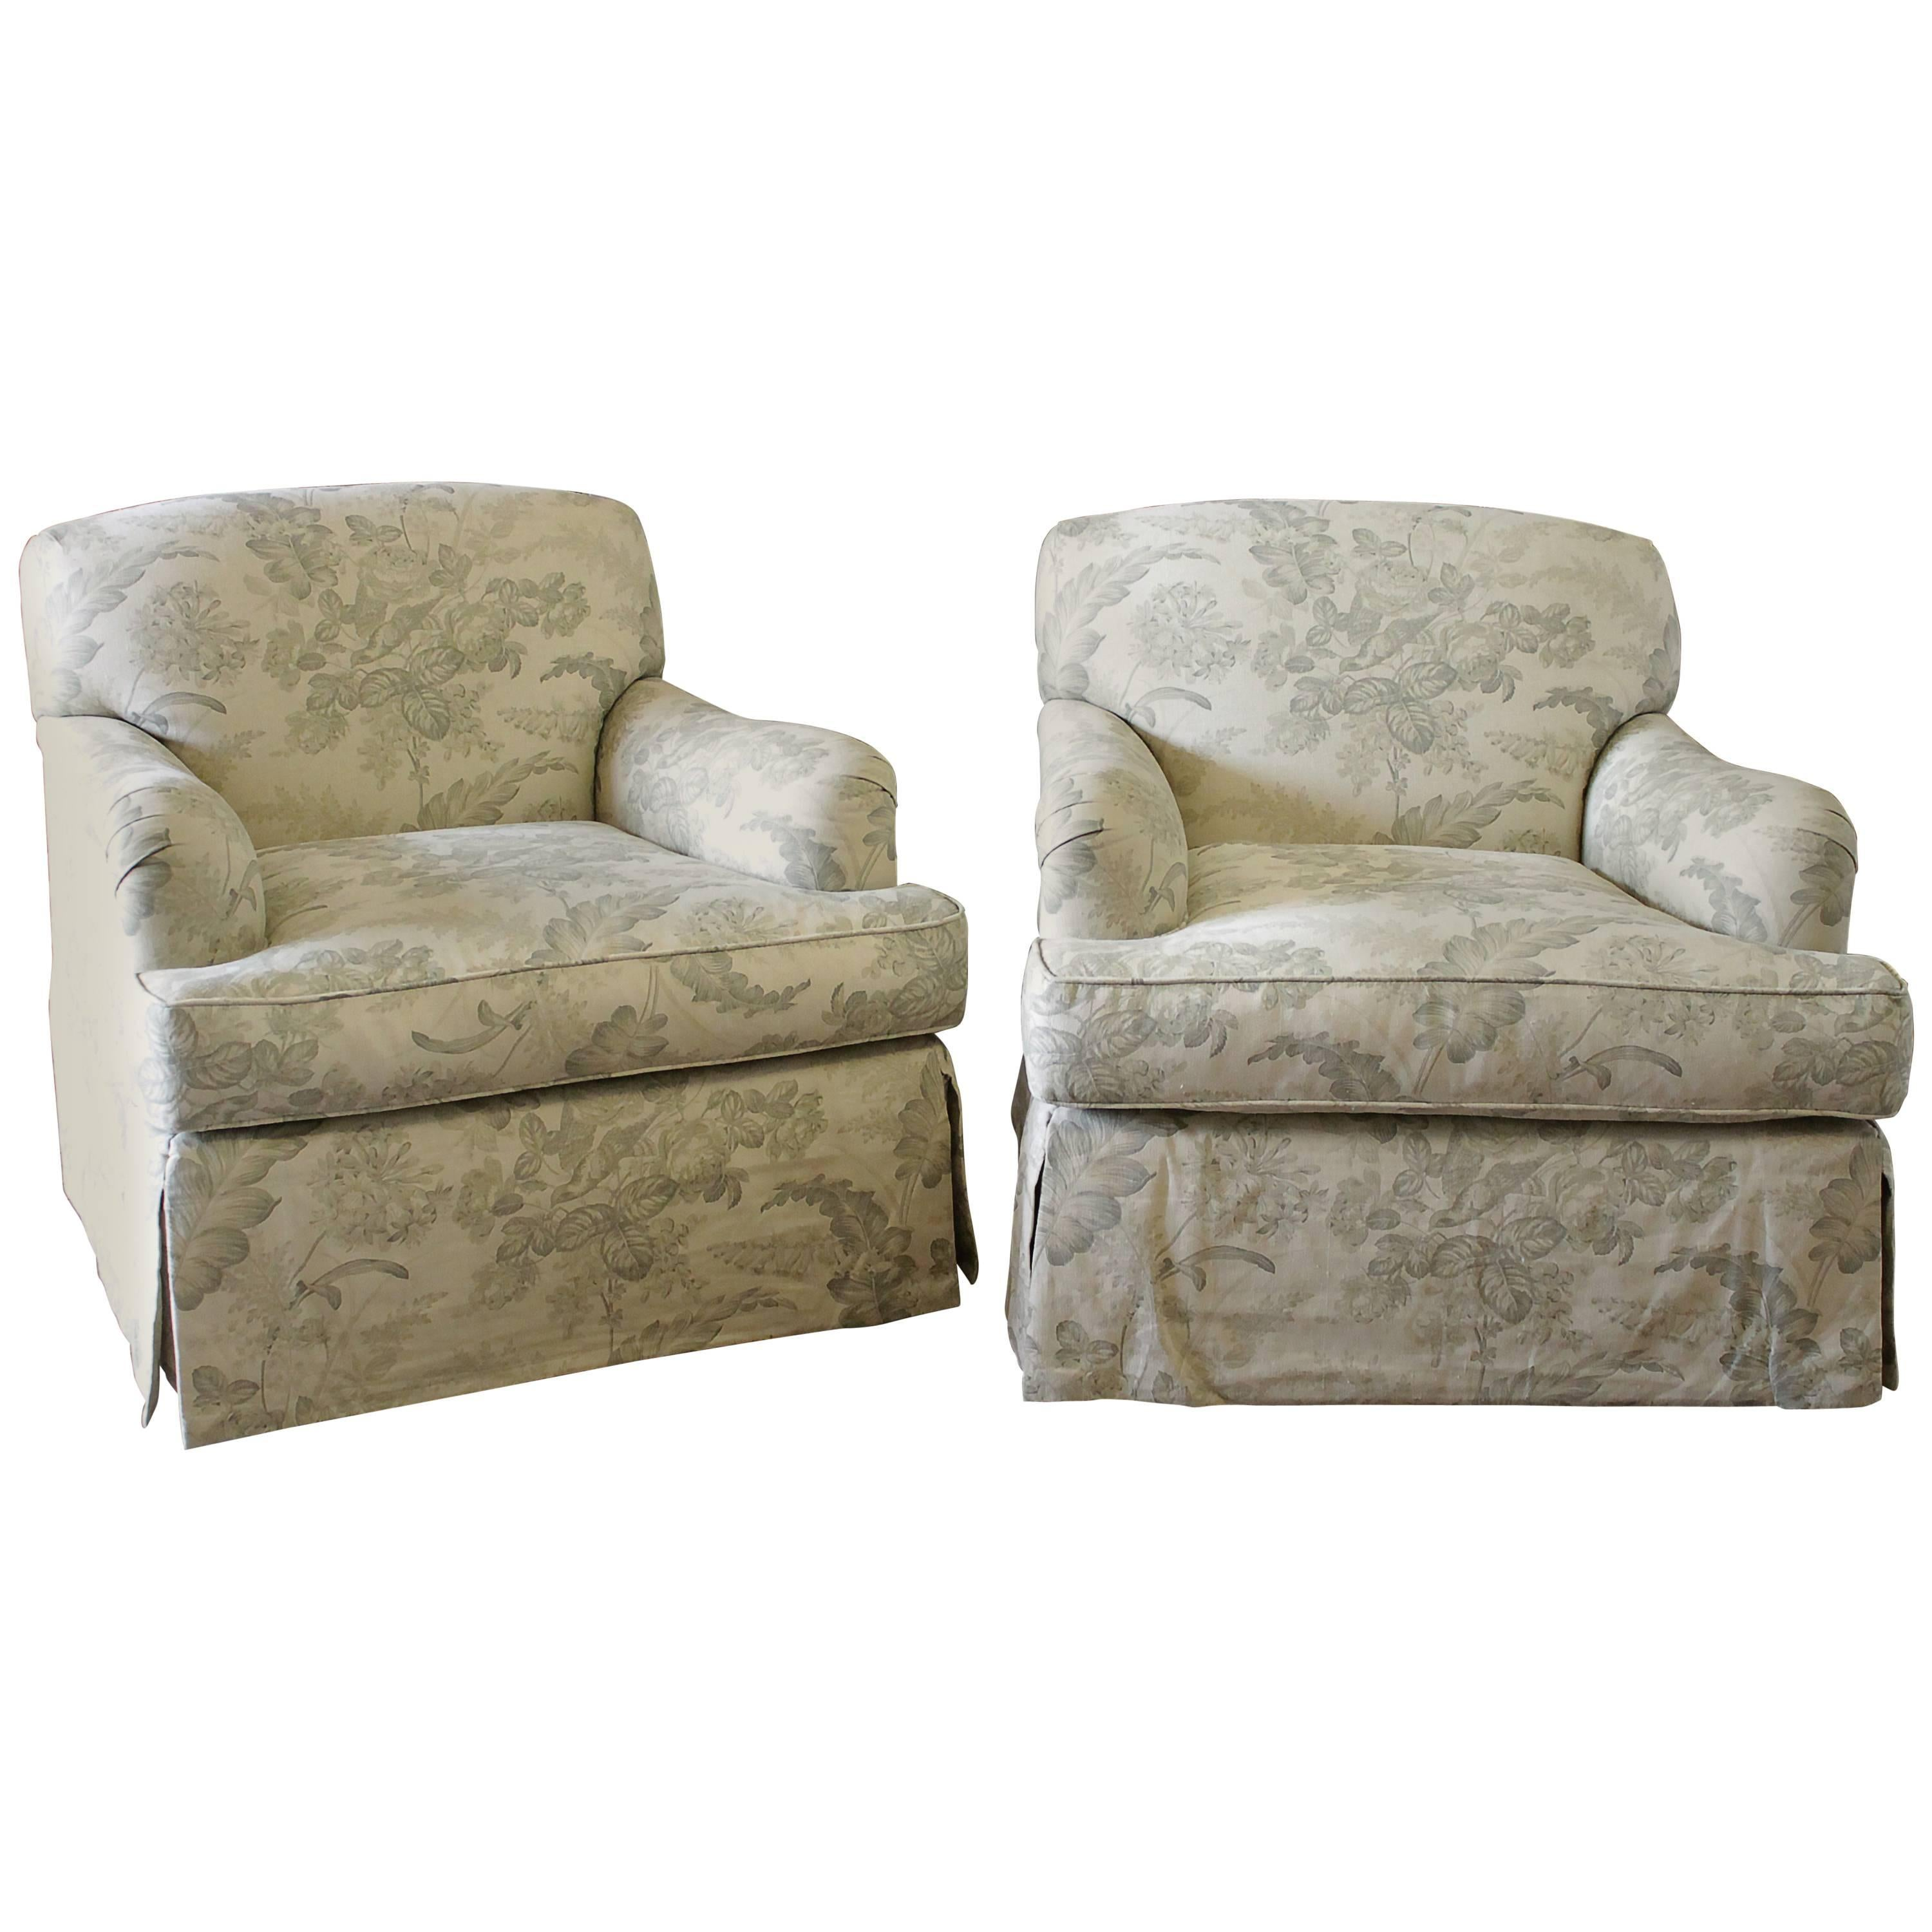 Pair Of Modern English Roll Arm Swivel Chairs In French Toile Linen  Upholstery For Sale